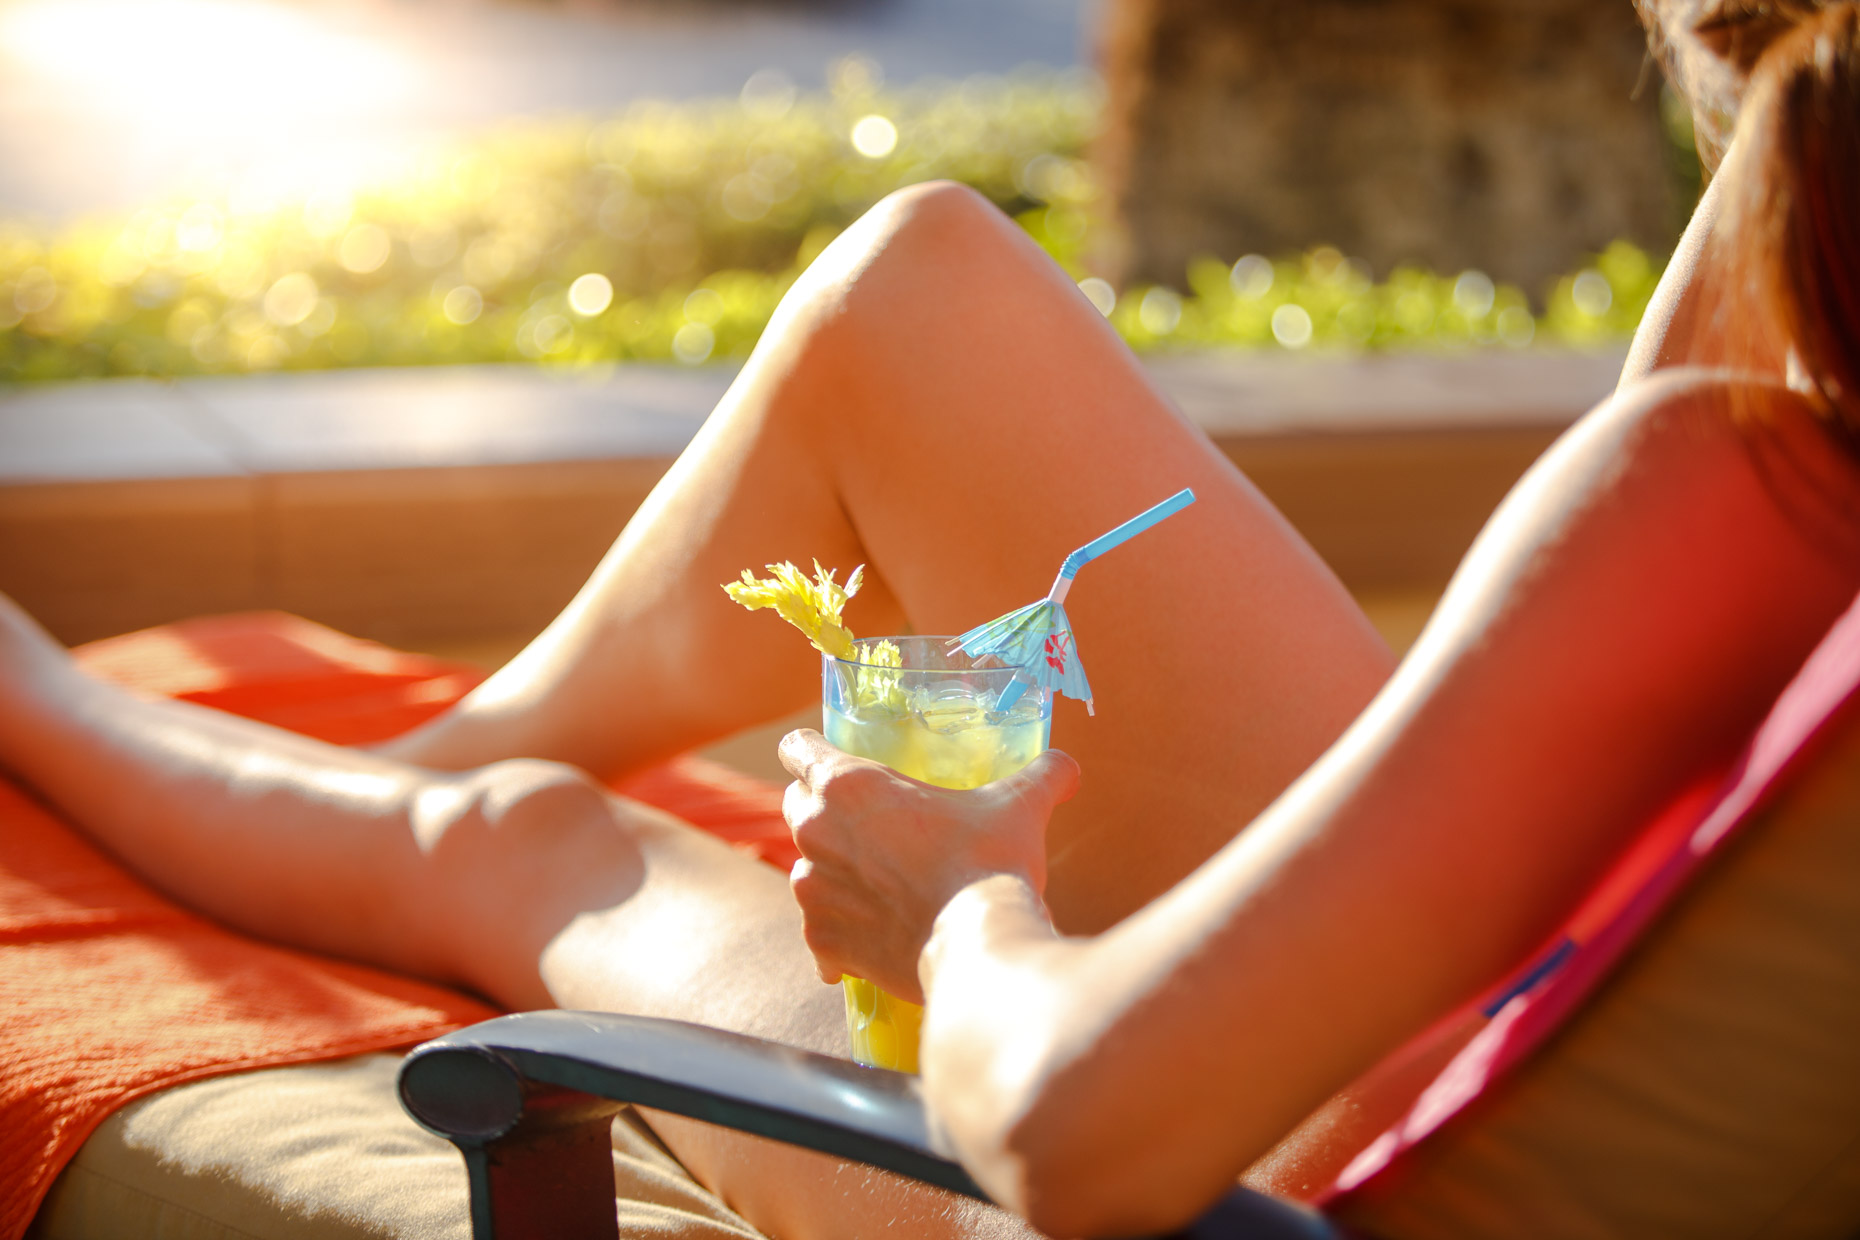 A woman lounges pool side in the sun with a cocktail